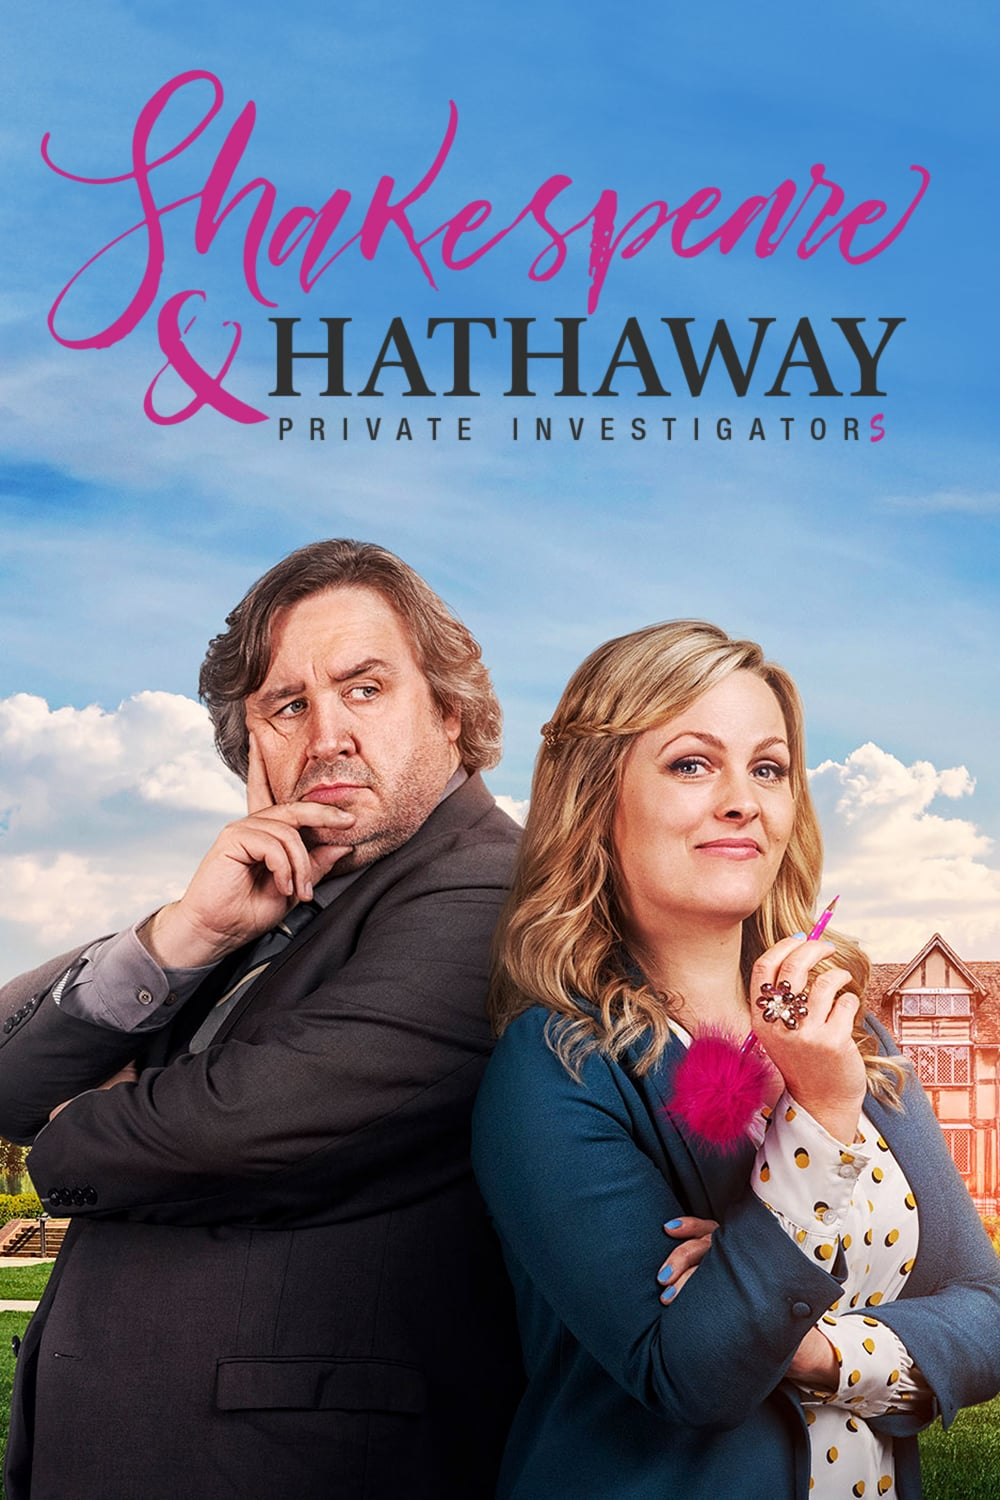 Shakespeare & Hathaway Private Investigators